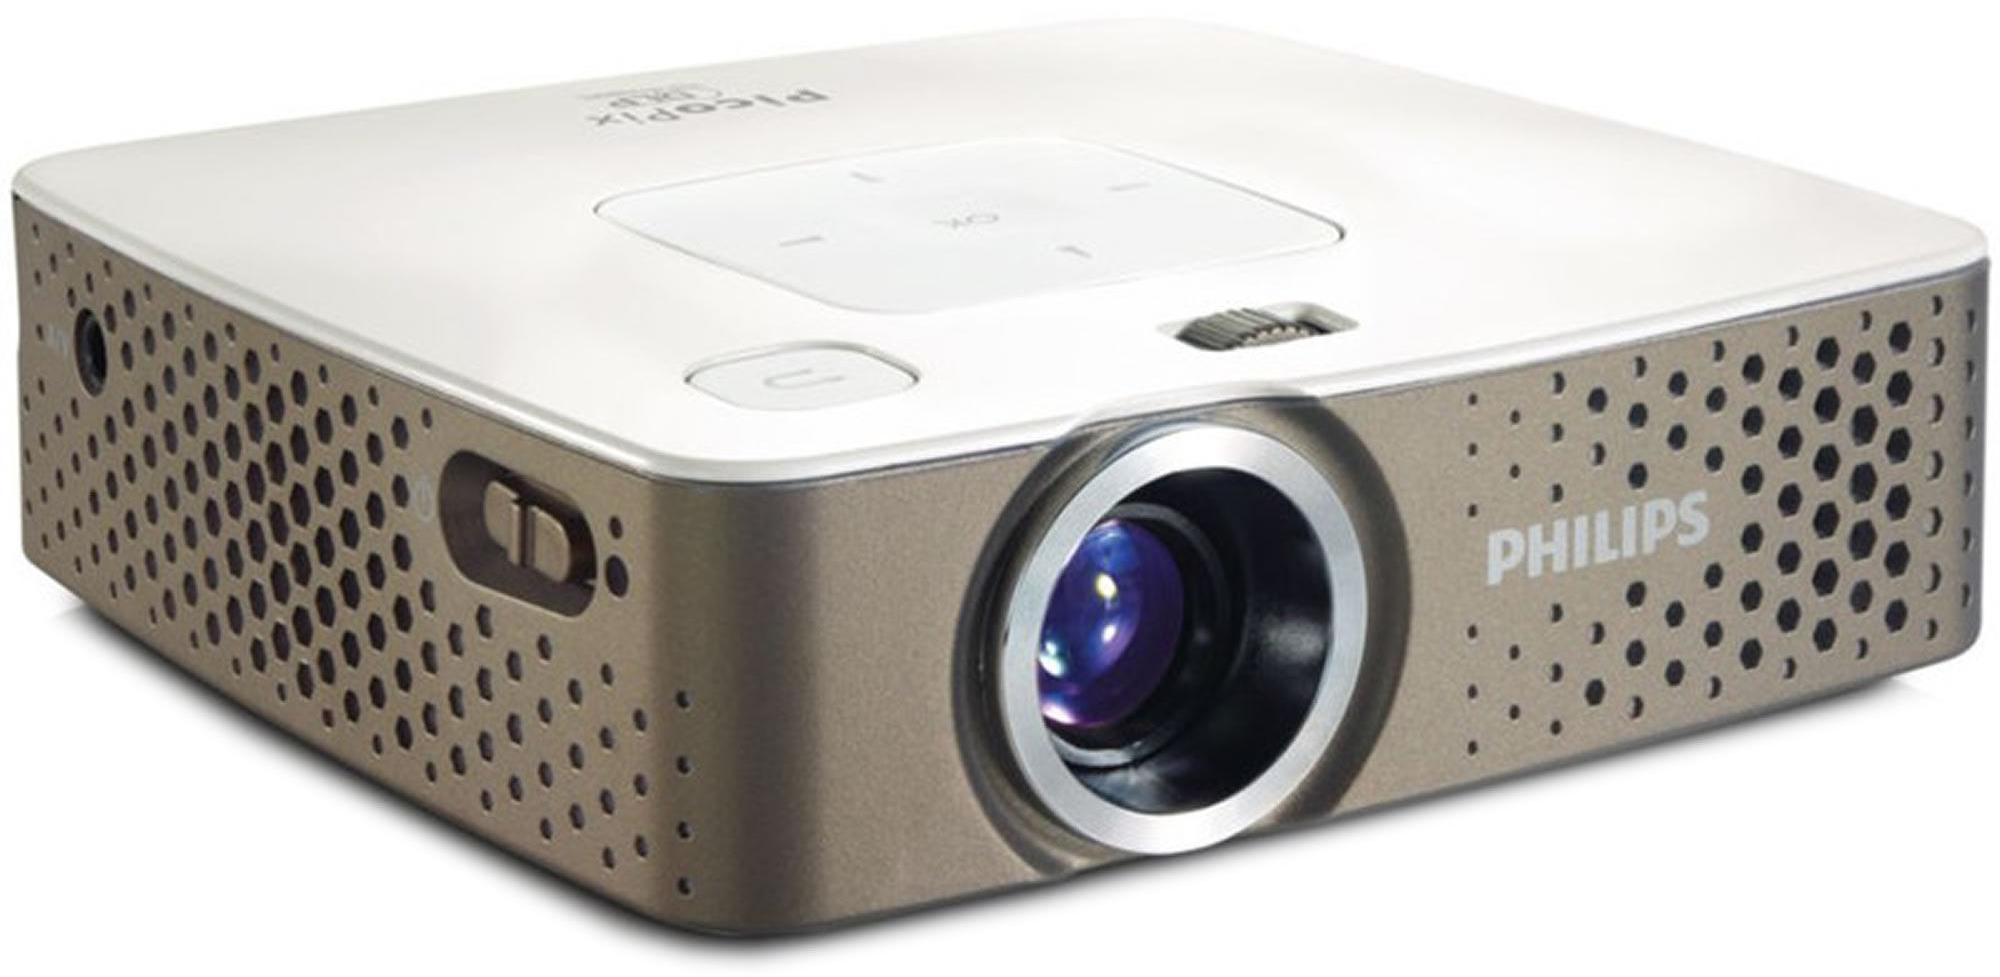 Philips PicoPix PPX3410 Pocket Projector